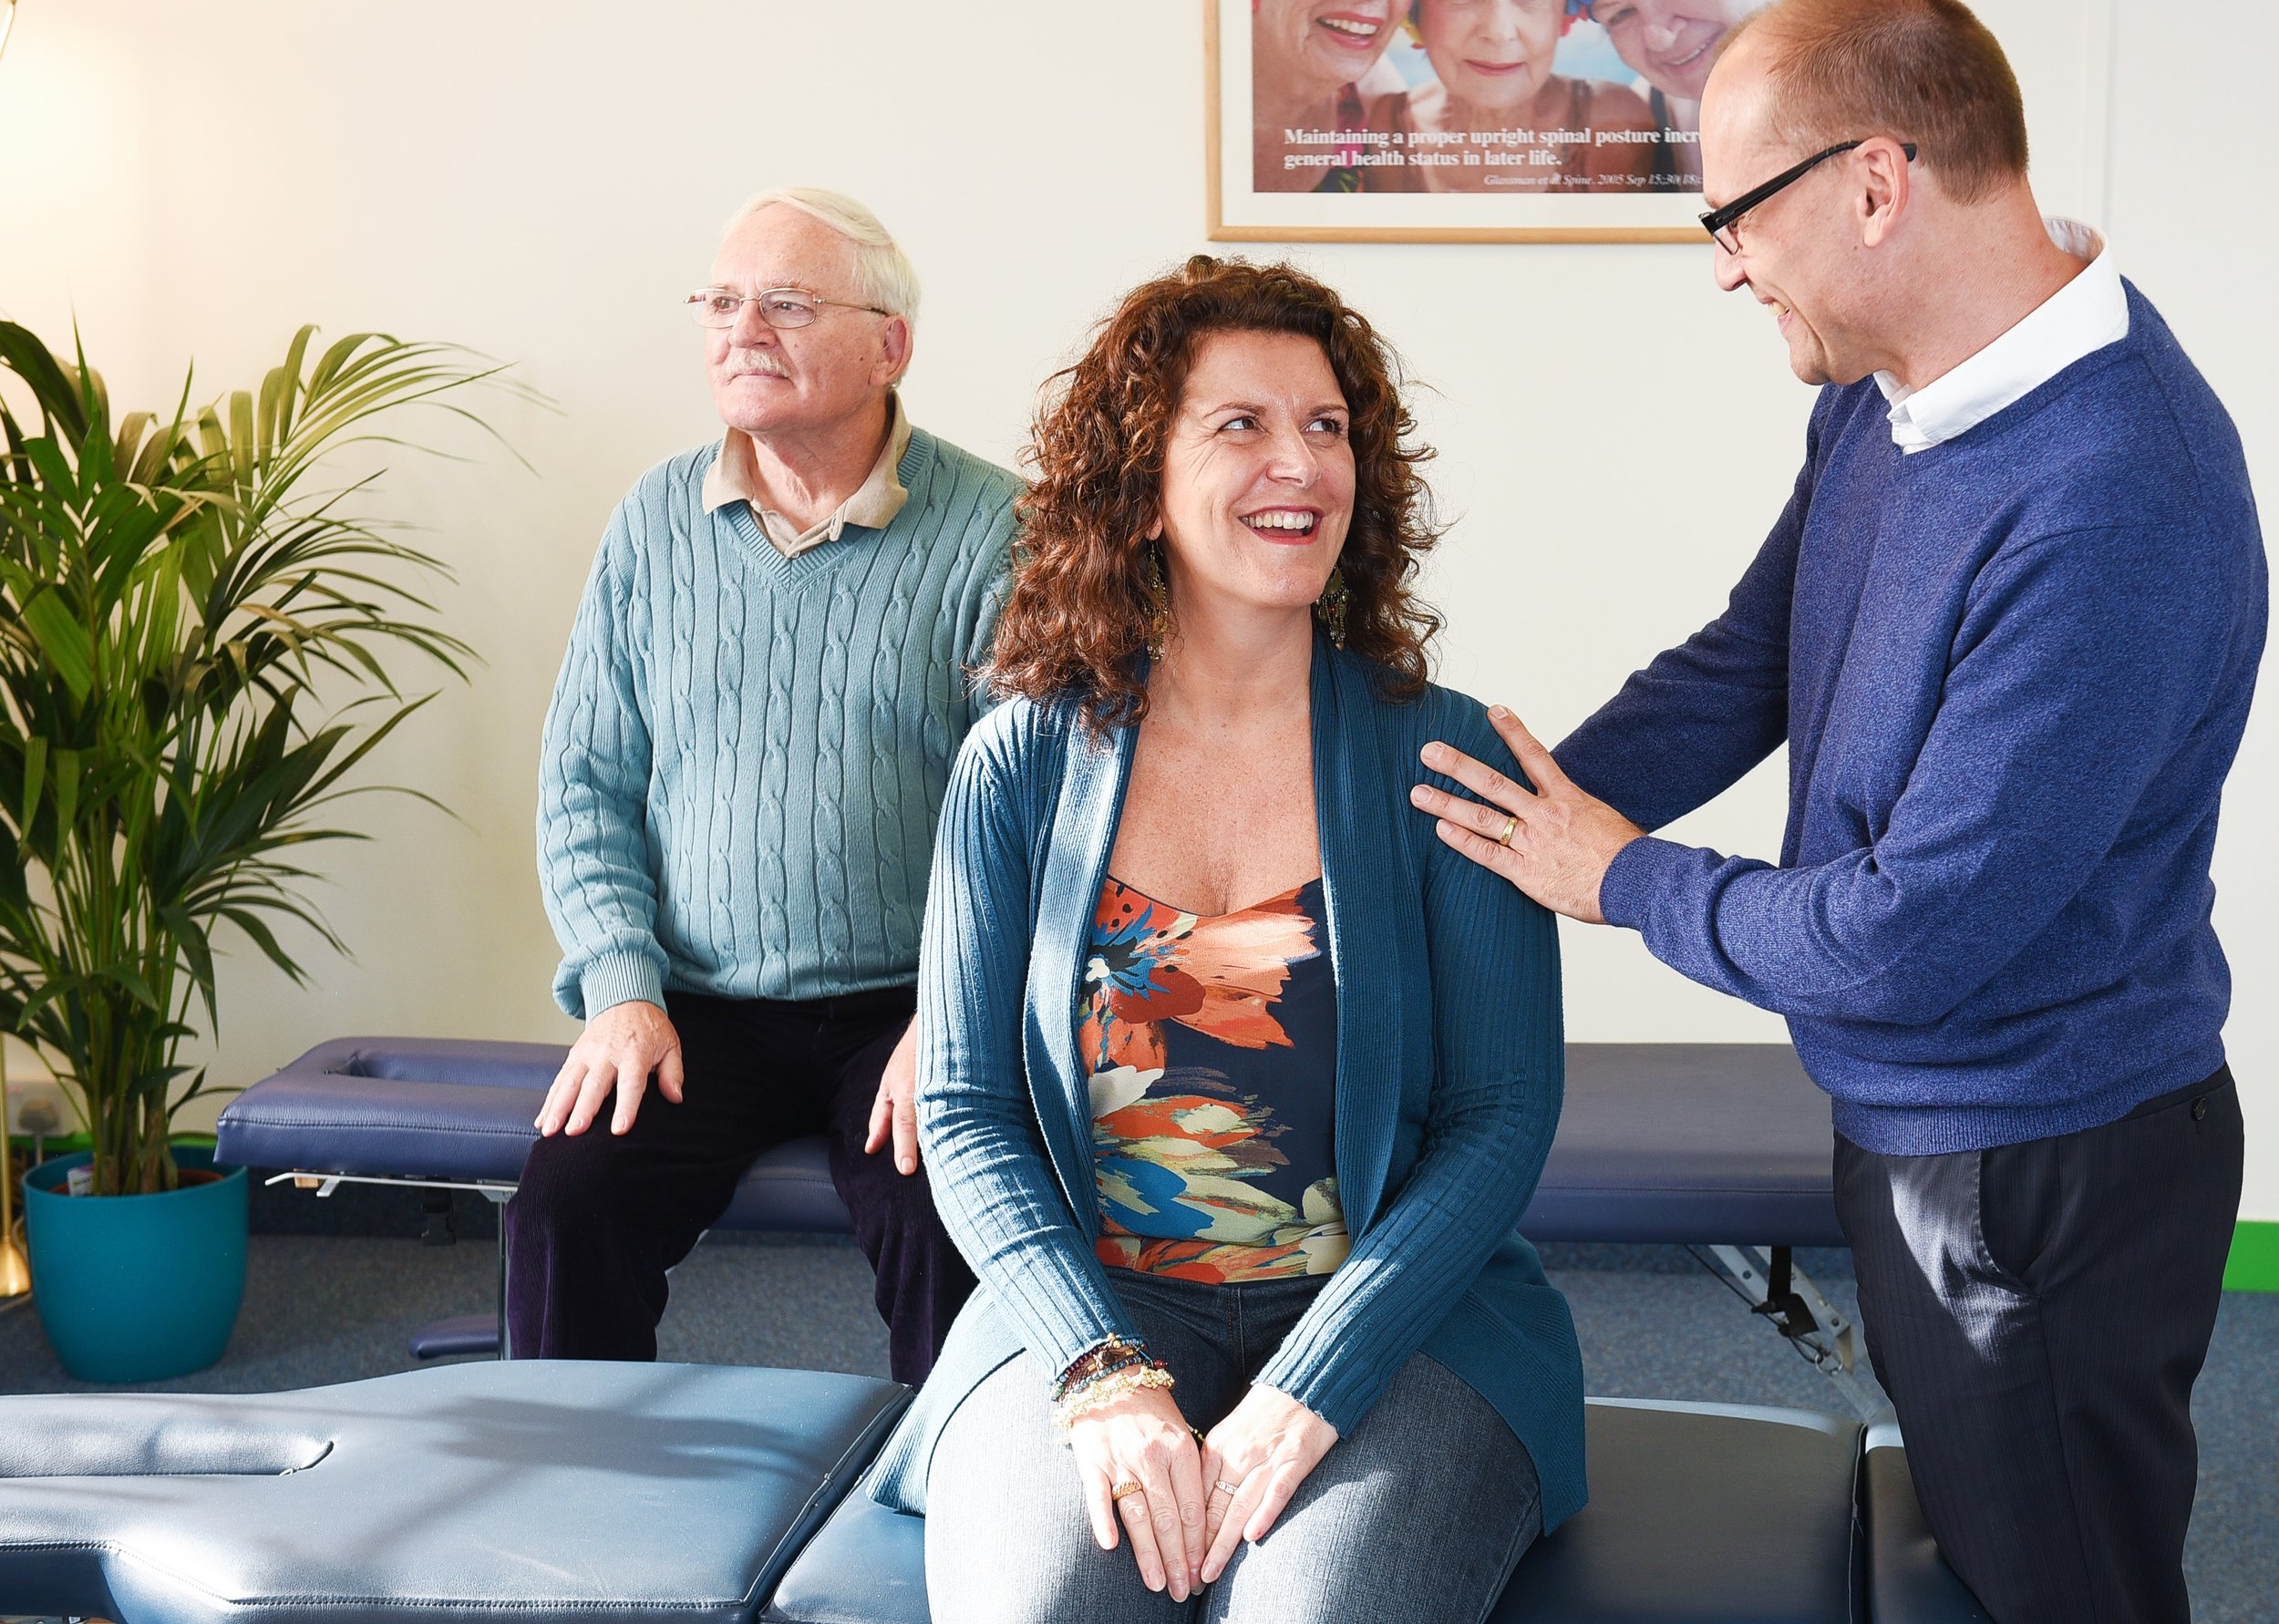 Step 3: Start - You will then be offered your first Network adjustment/treatment straight away.We work with you to help your spine and nervous system connect and upgrade its ability to heal.The vast majority of people report they feel less pain, calmer, have more energy and sleep better from the first visit onwards. You too can thrive again!